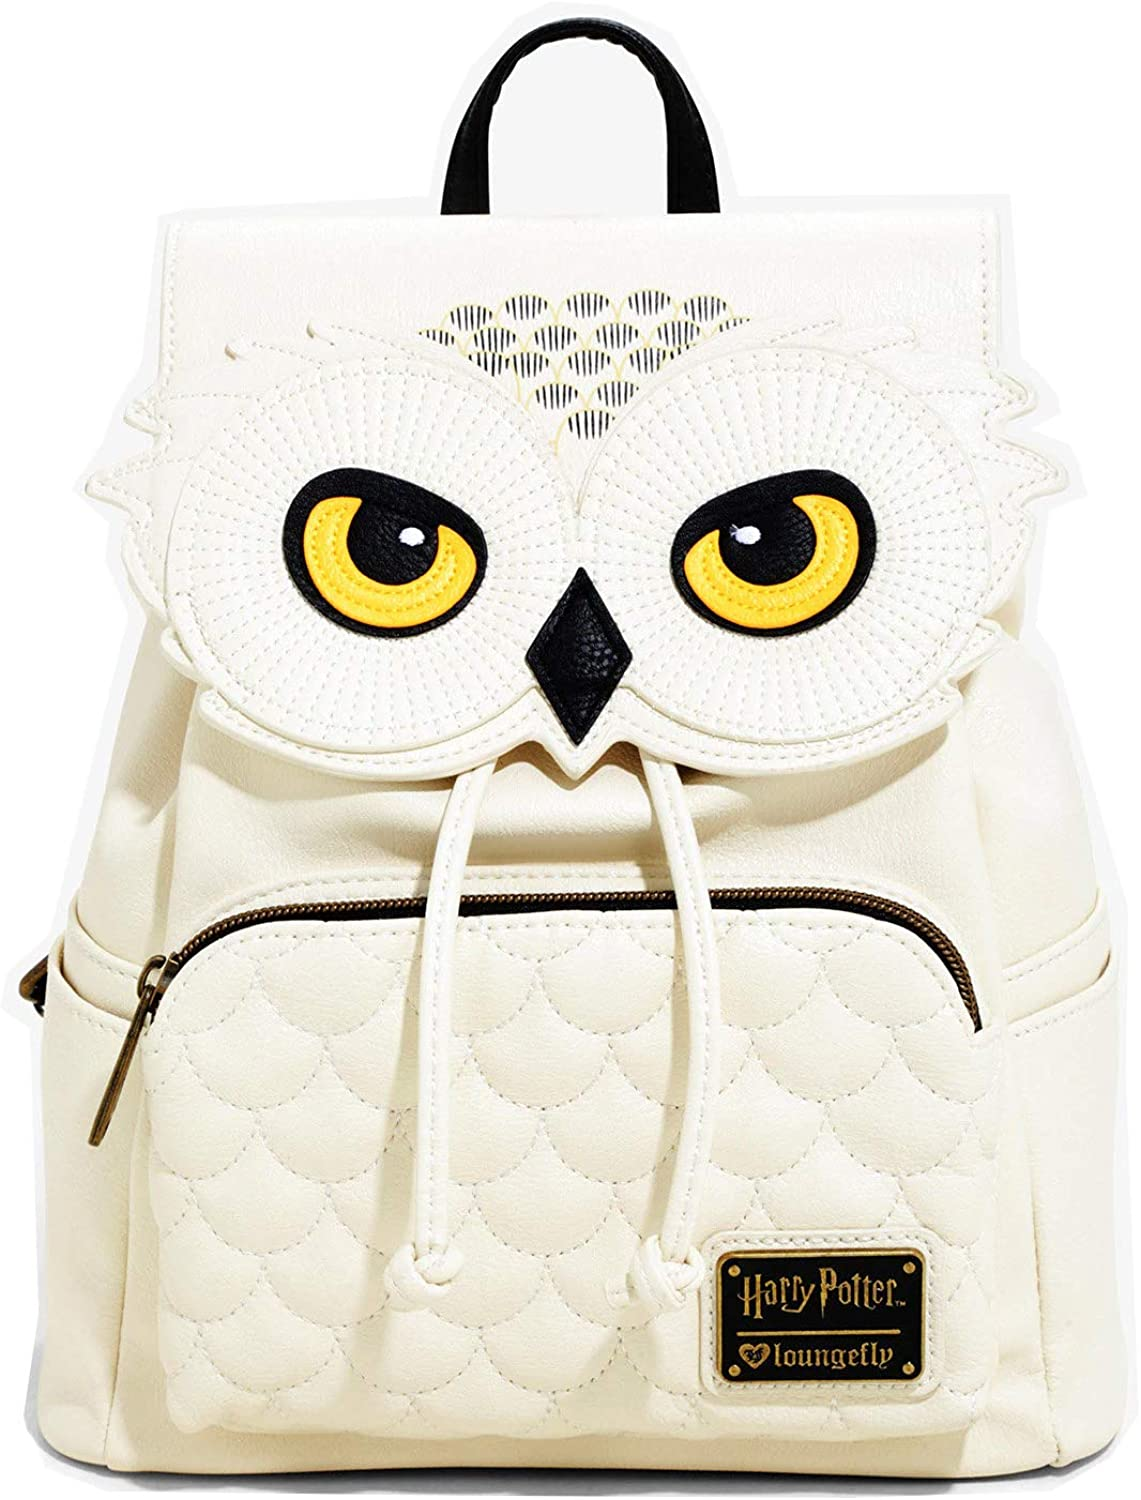 Loungefly Harry Potter Hedwig Faux Leather Mini Backpack Standard, Beige